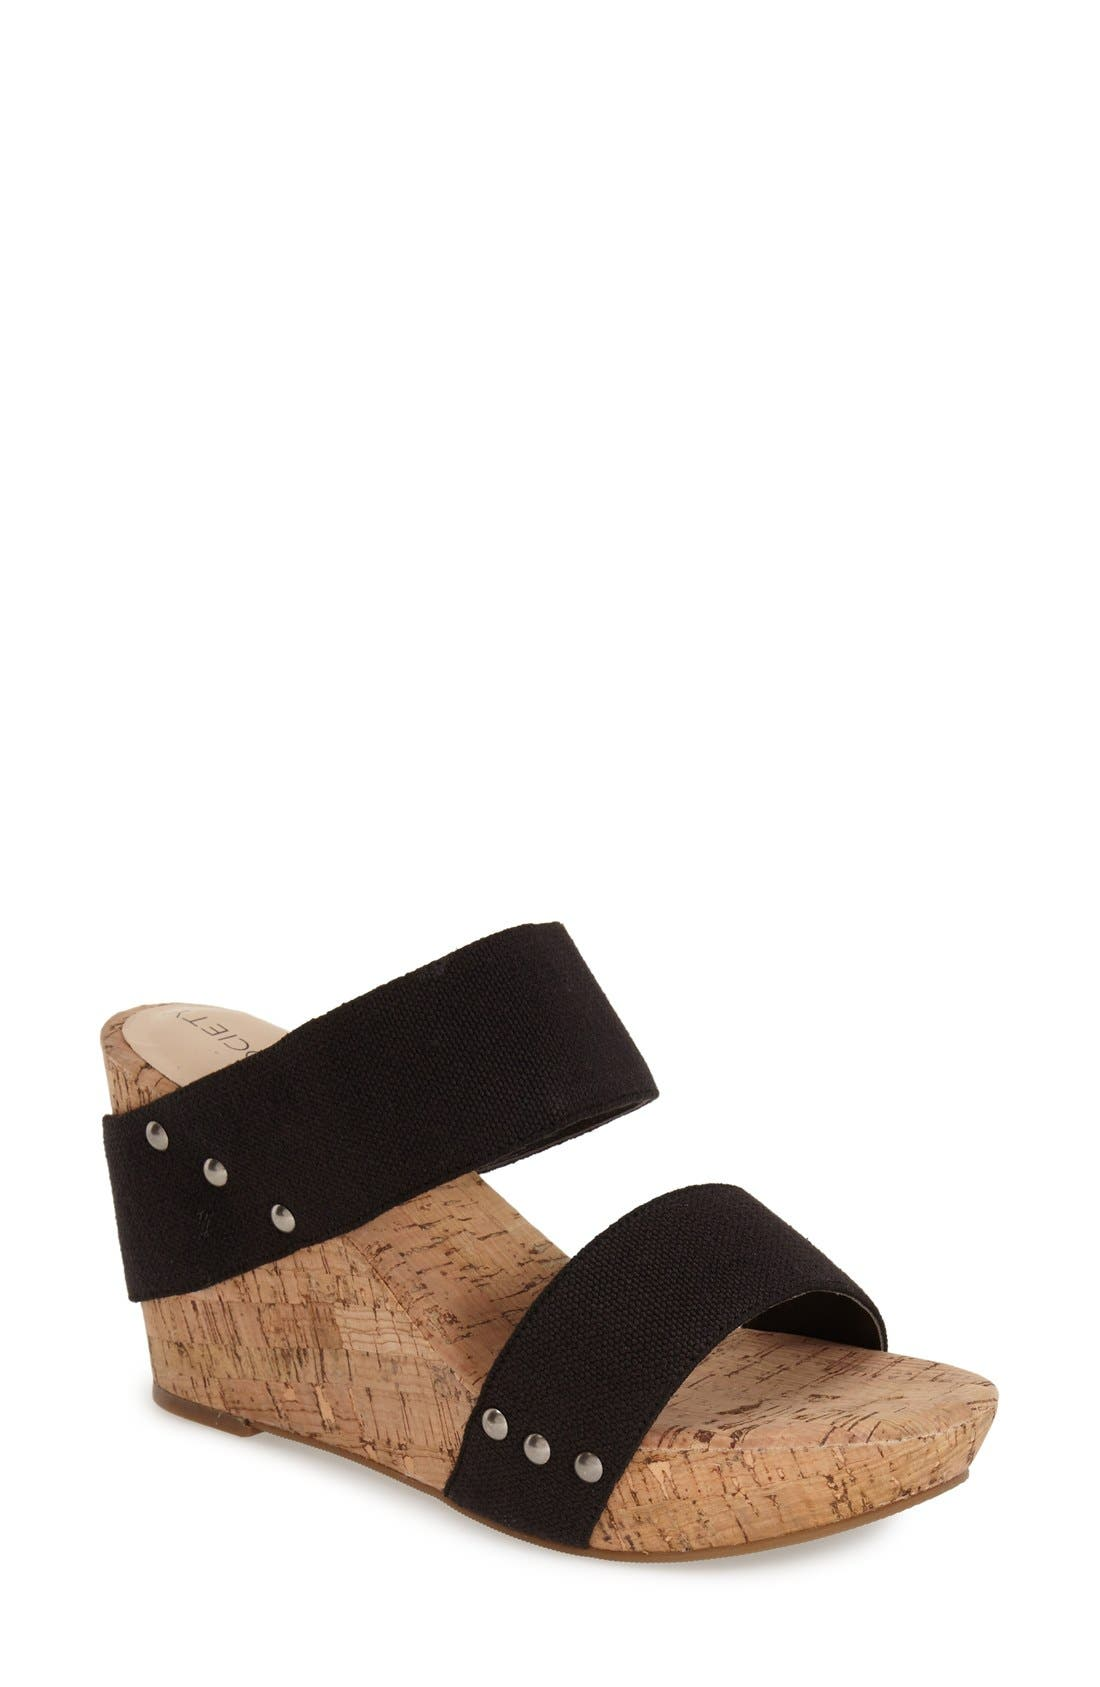 'Emilia 2' Wedge Sandal,                             Main thumbnail 1, color,                             001